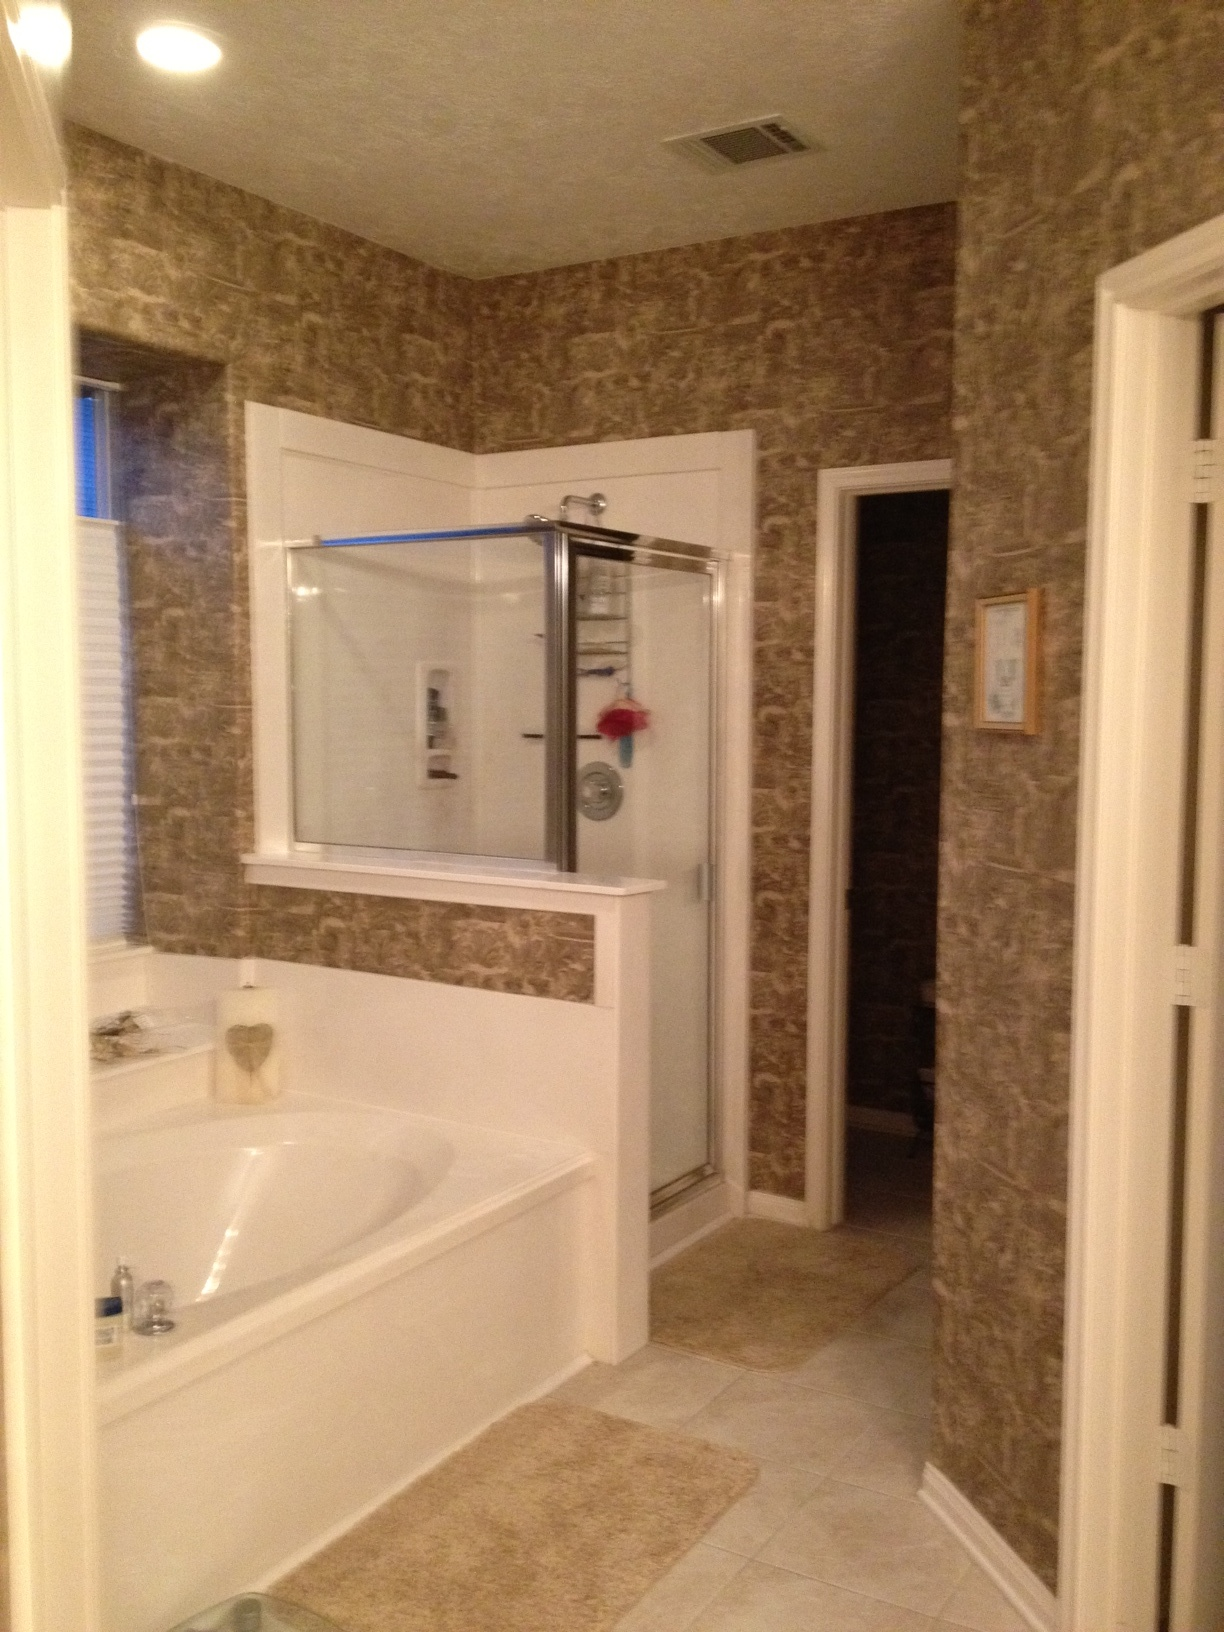 Master bathroom wallpaper help vinyl paint sand color home interior design and decorating - Master bathroom design and interior guide ...